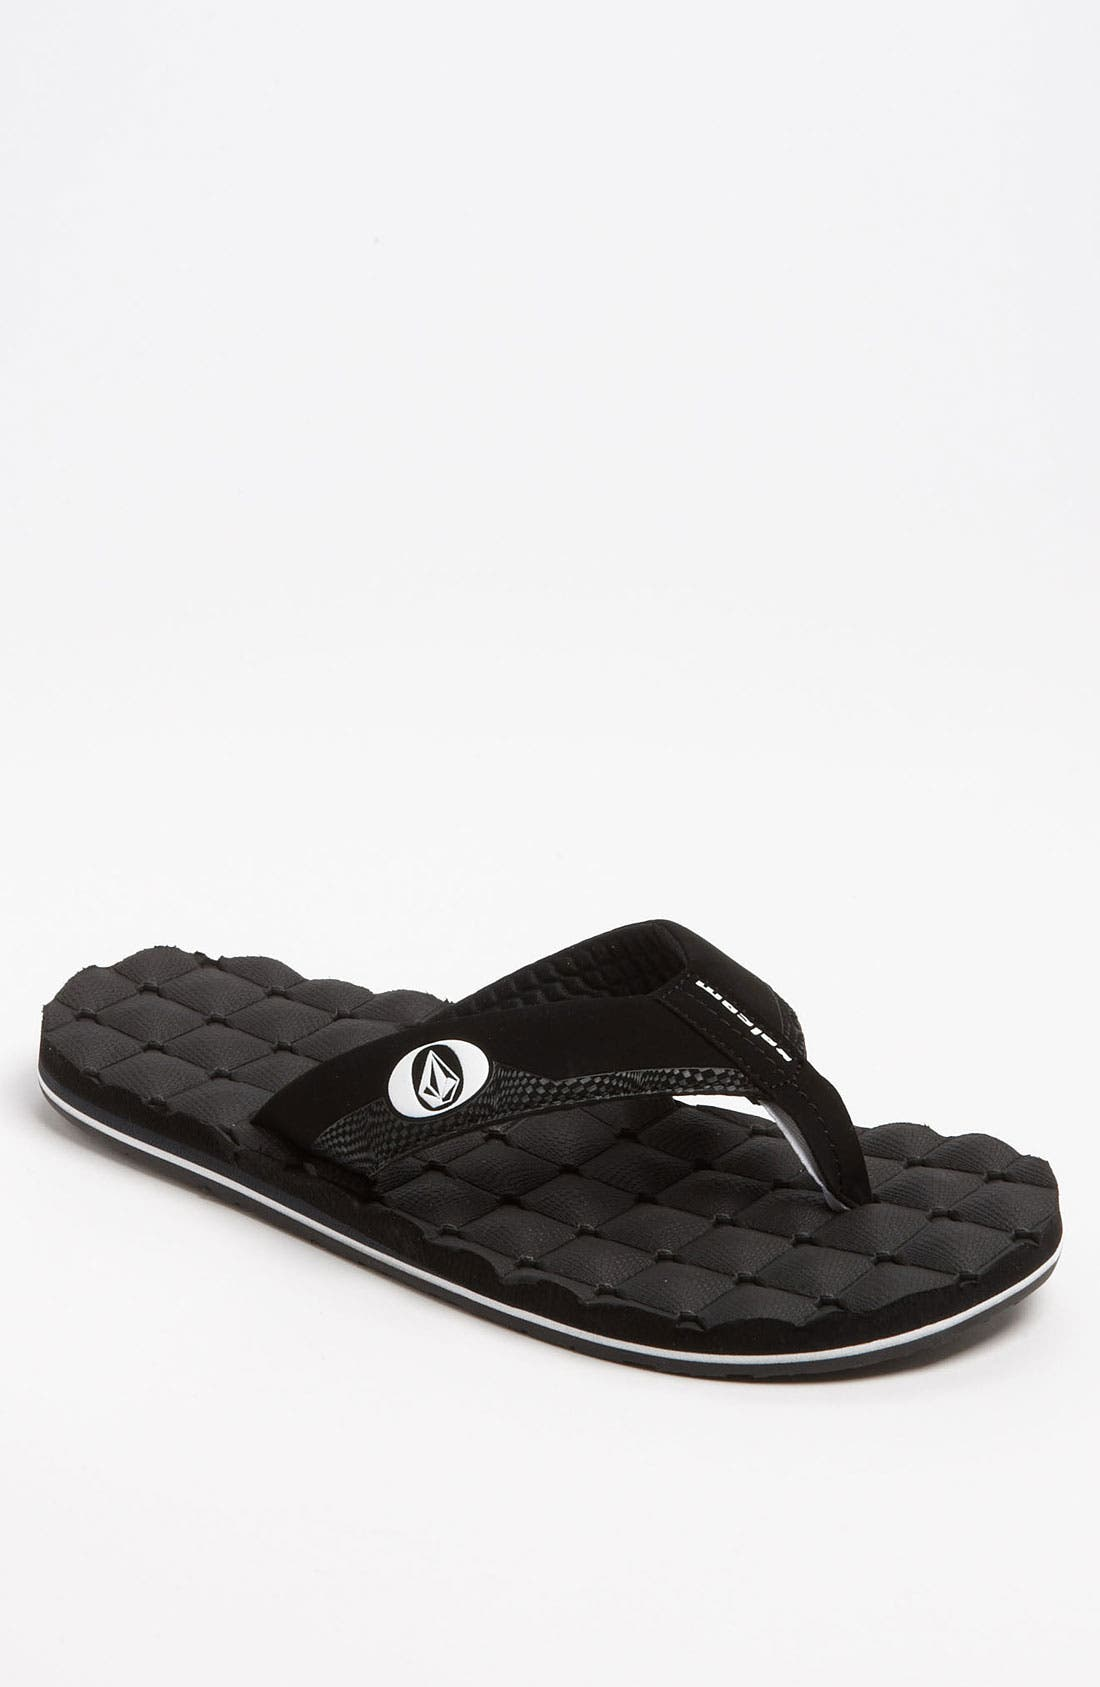 Alternate Image 1 Selected - Volcom 'Creedlers - Recliner' Flip Flop